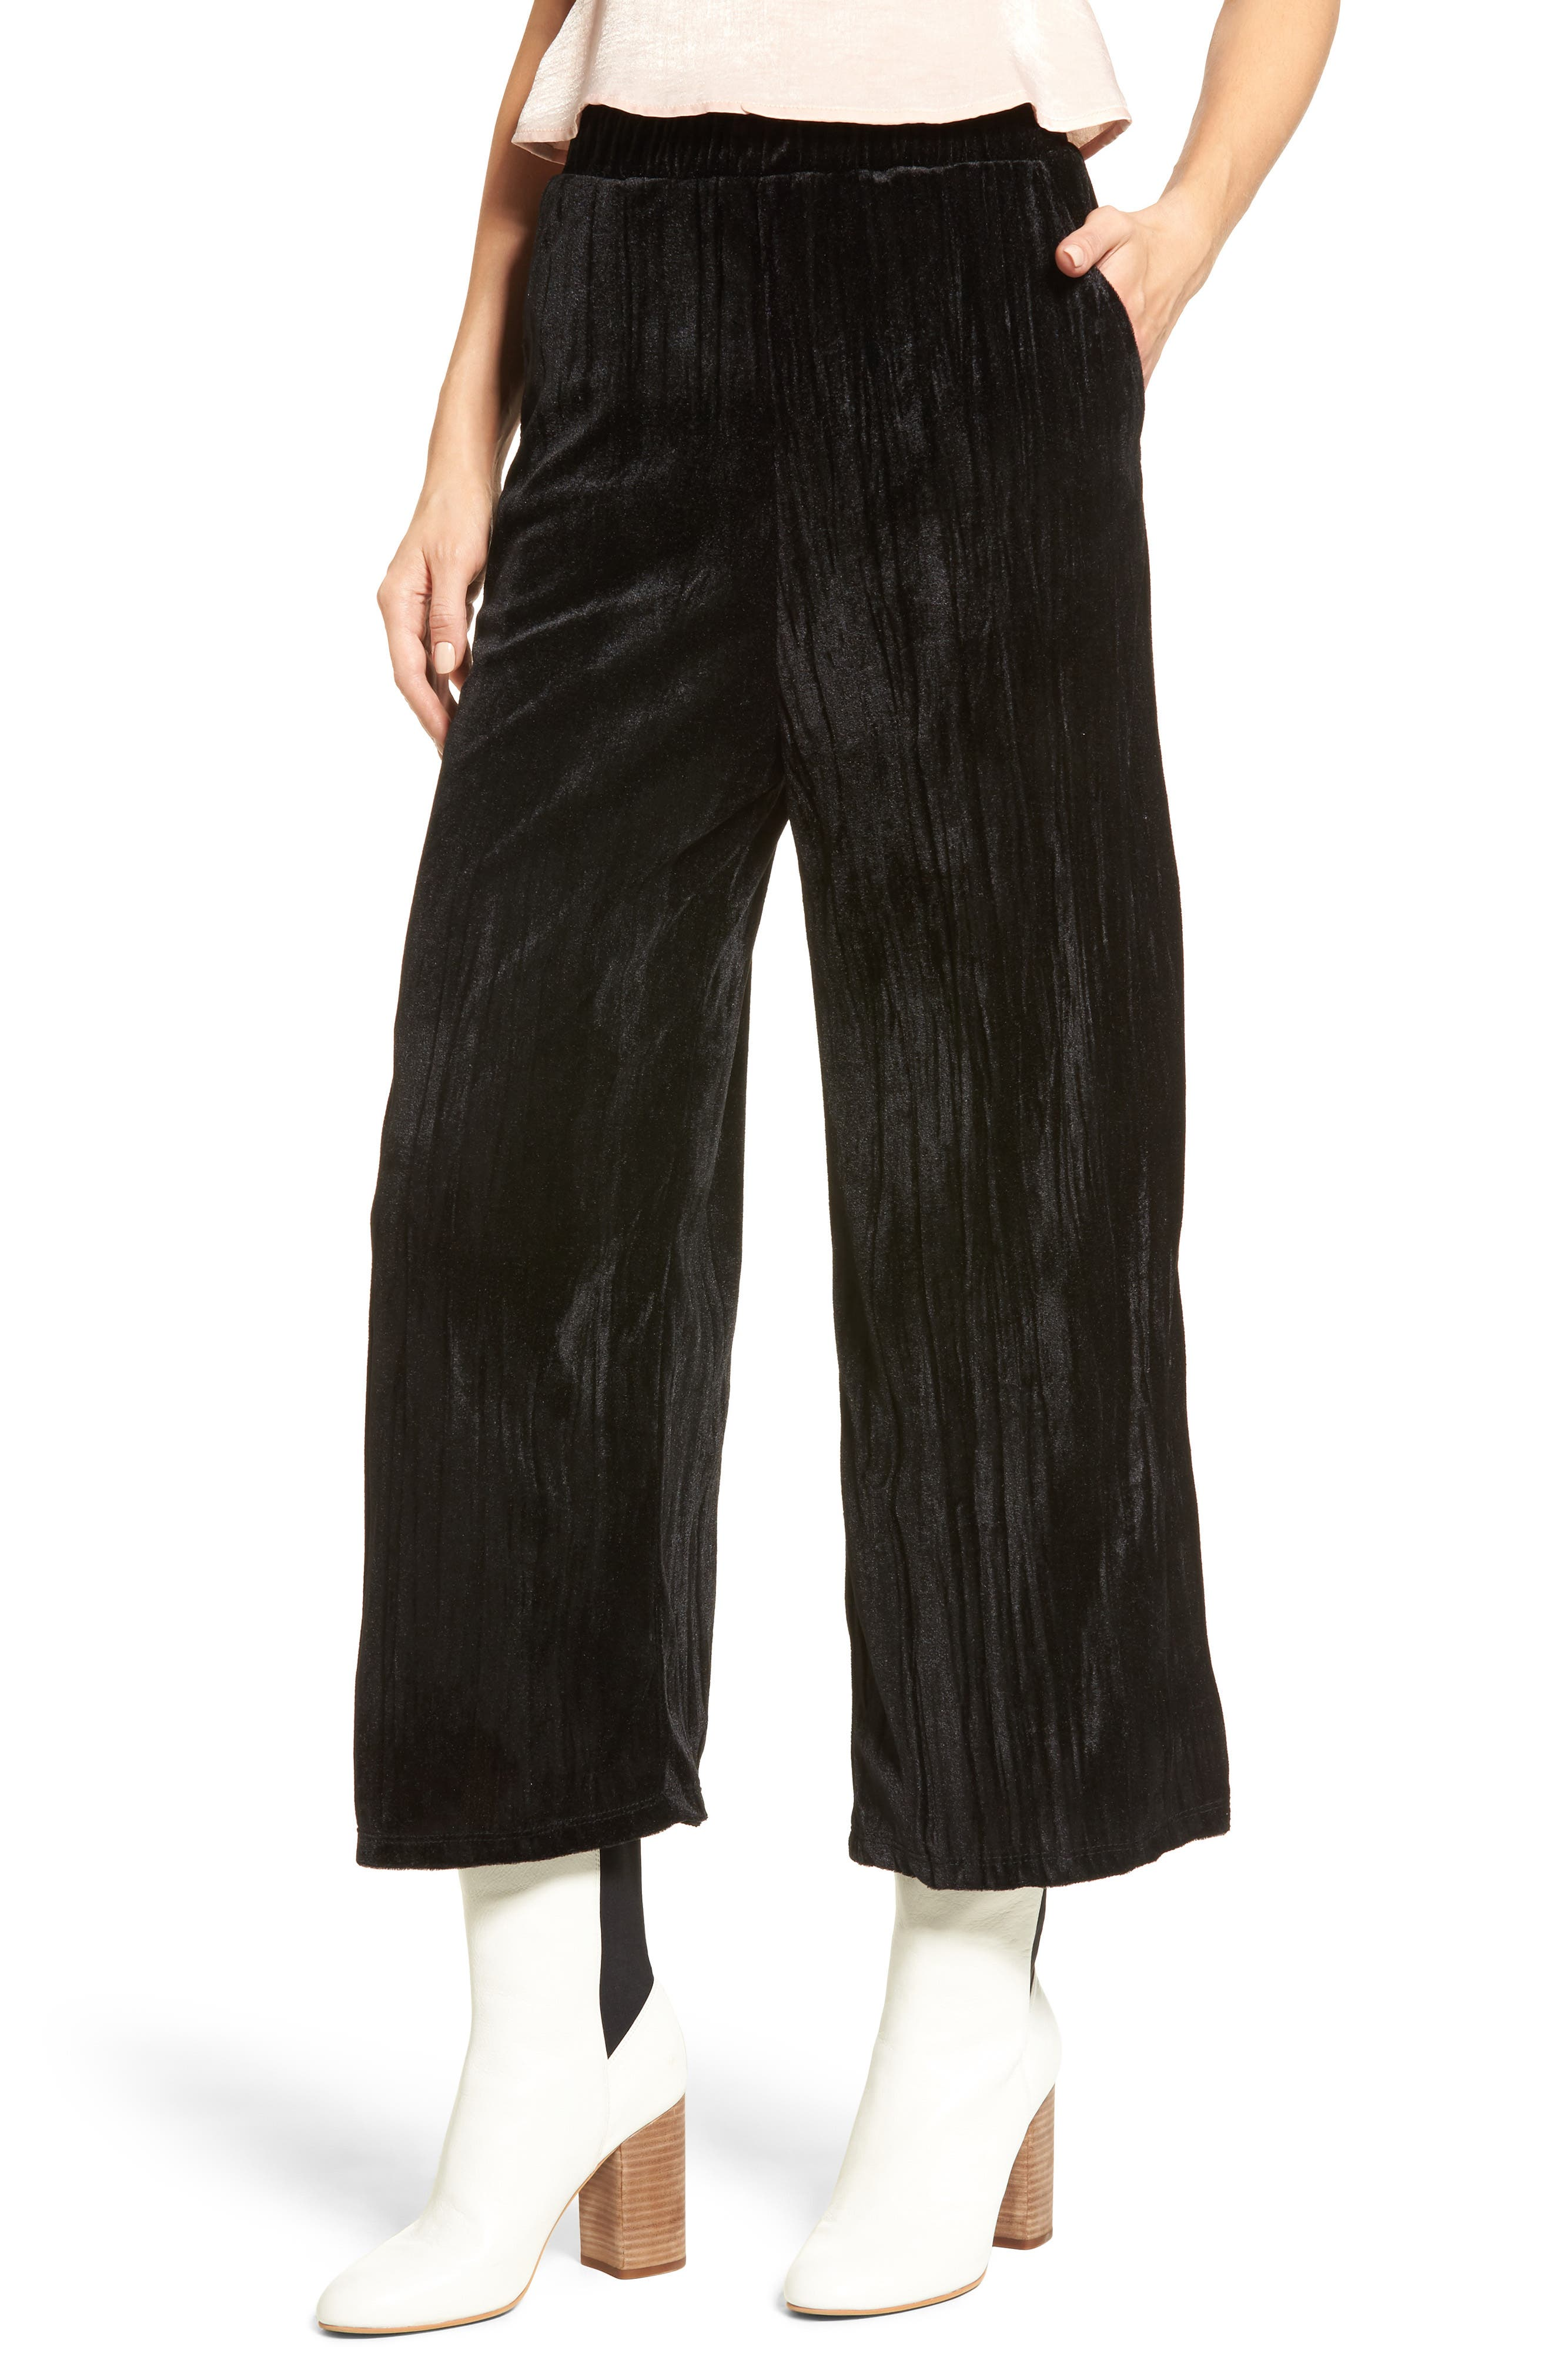 Alternate Image 1 Selected - Mimi Chica Velvet Culottes